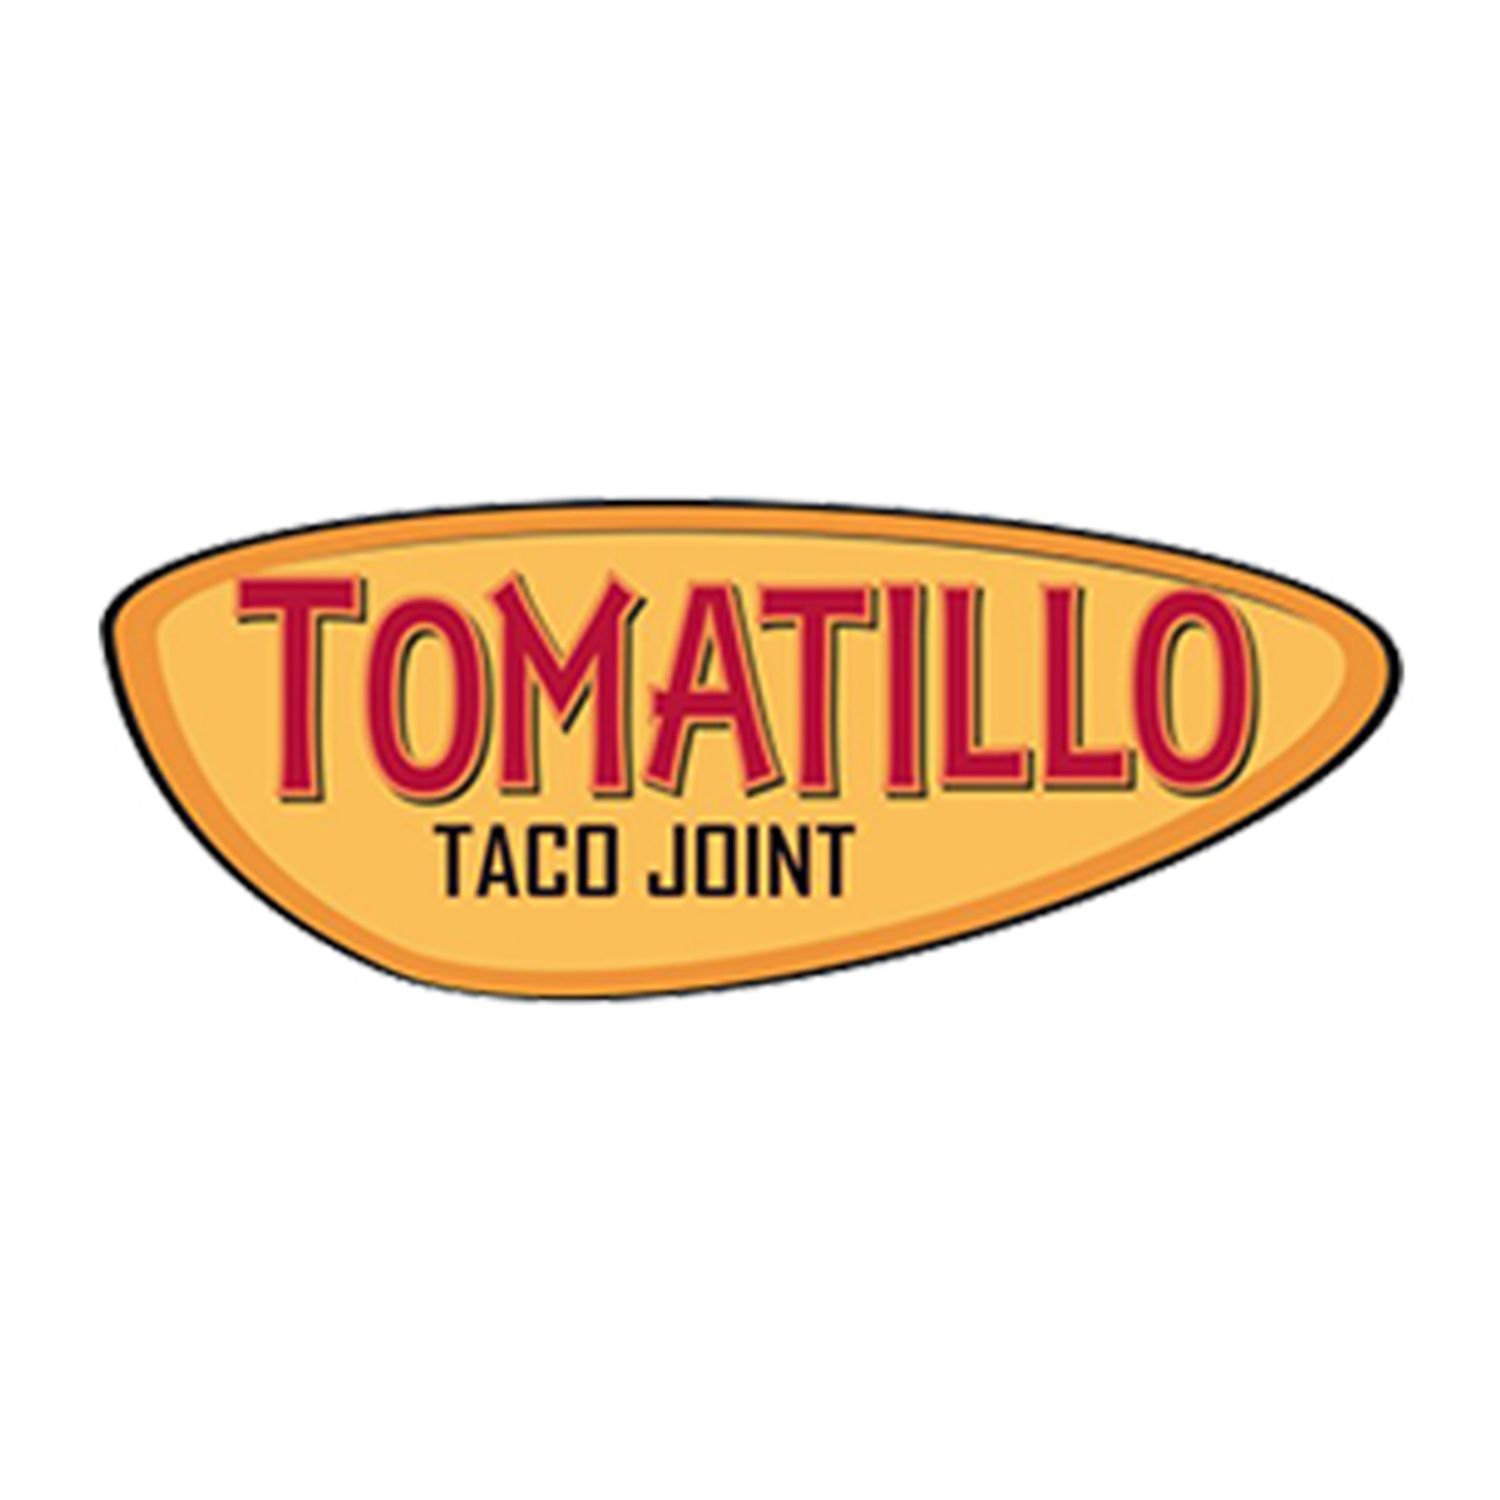 TOMATILLO TACO JOINT : YOUR LOCAL TACO JOINT FRESH ALL NATURAL AUTHENTIC INGREDIENTS!